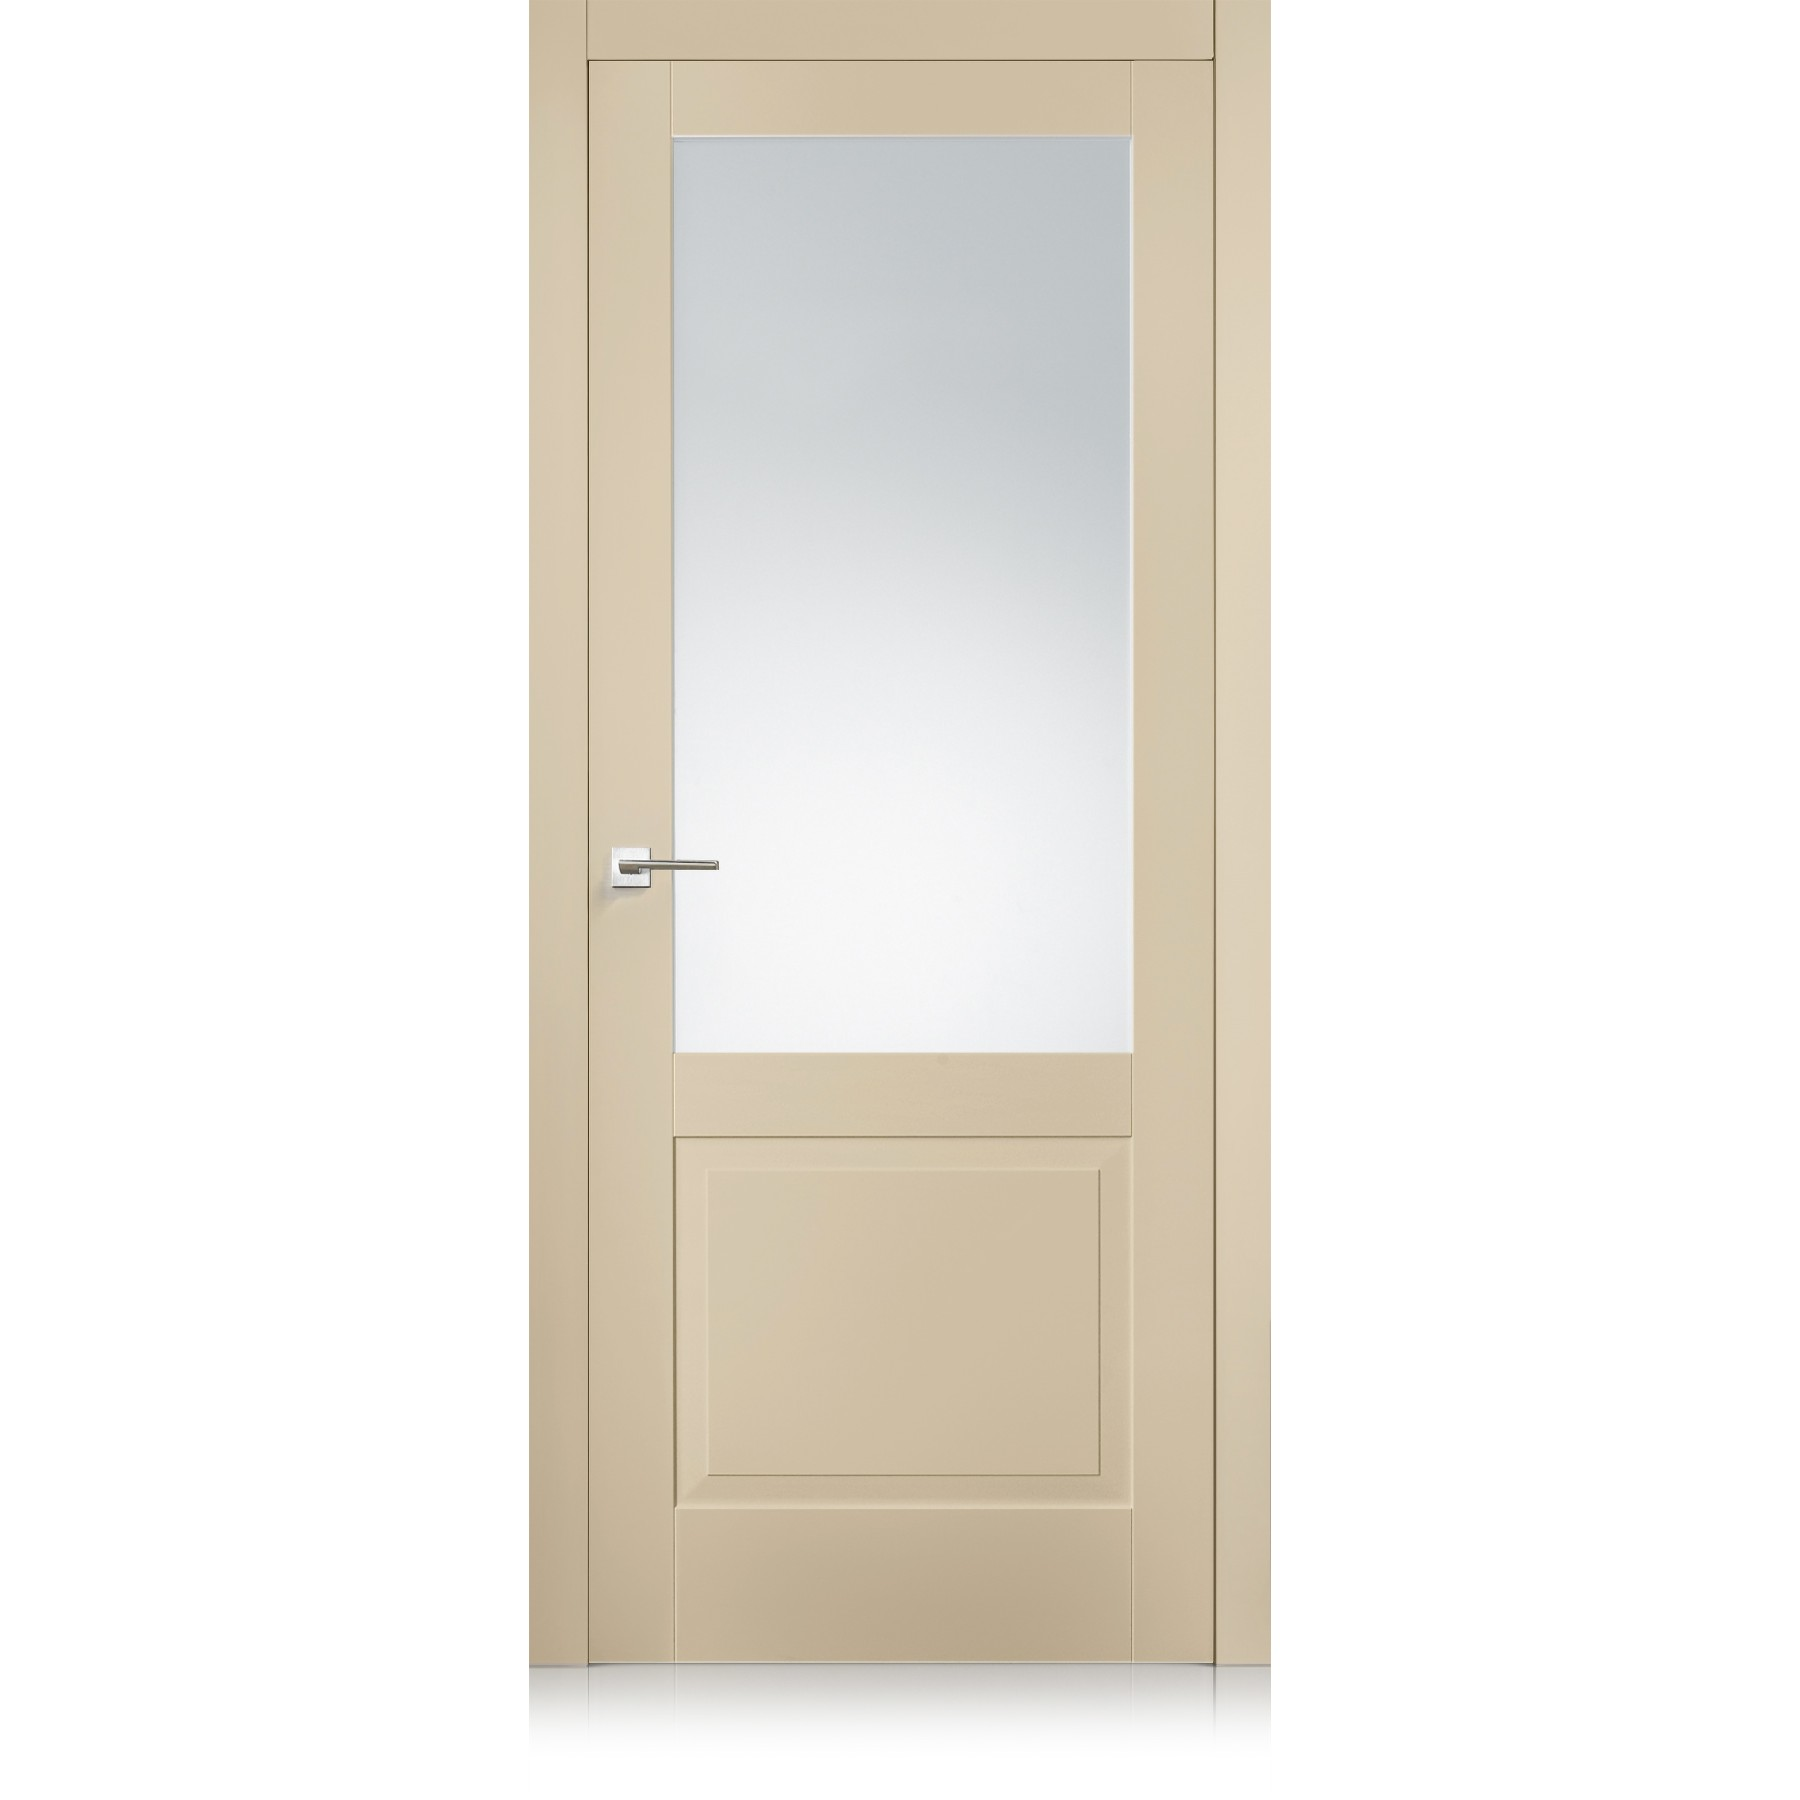 Suite / 6 cremy door